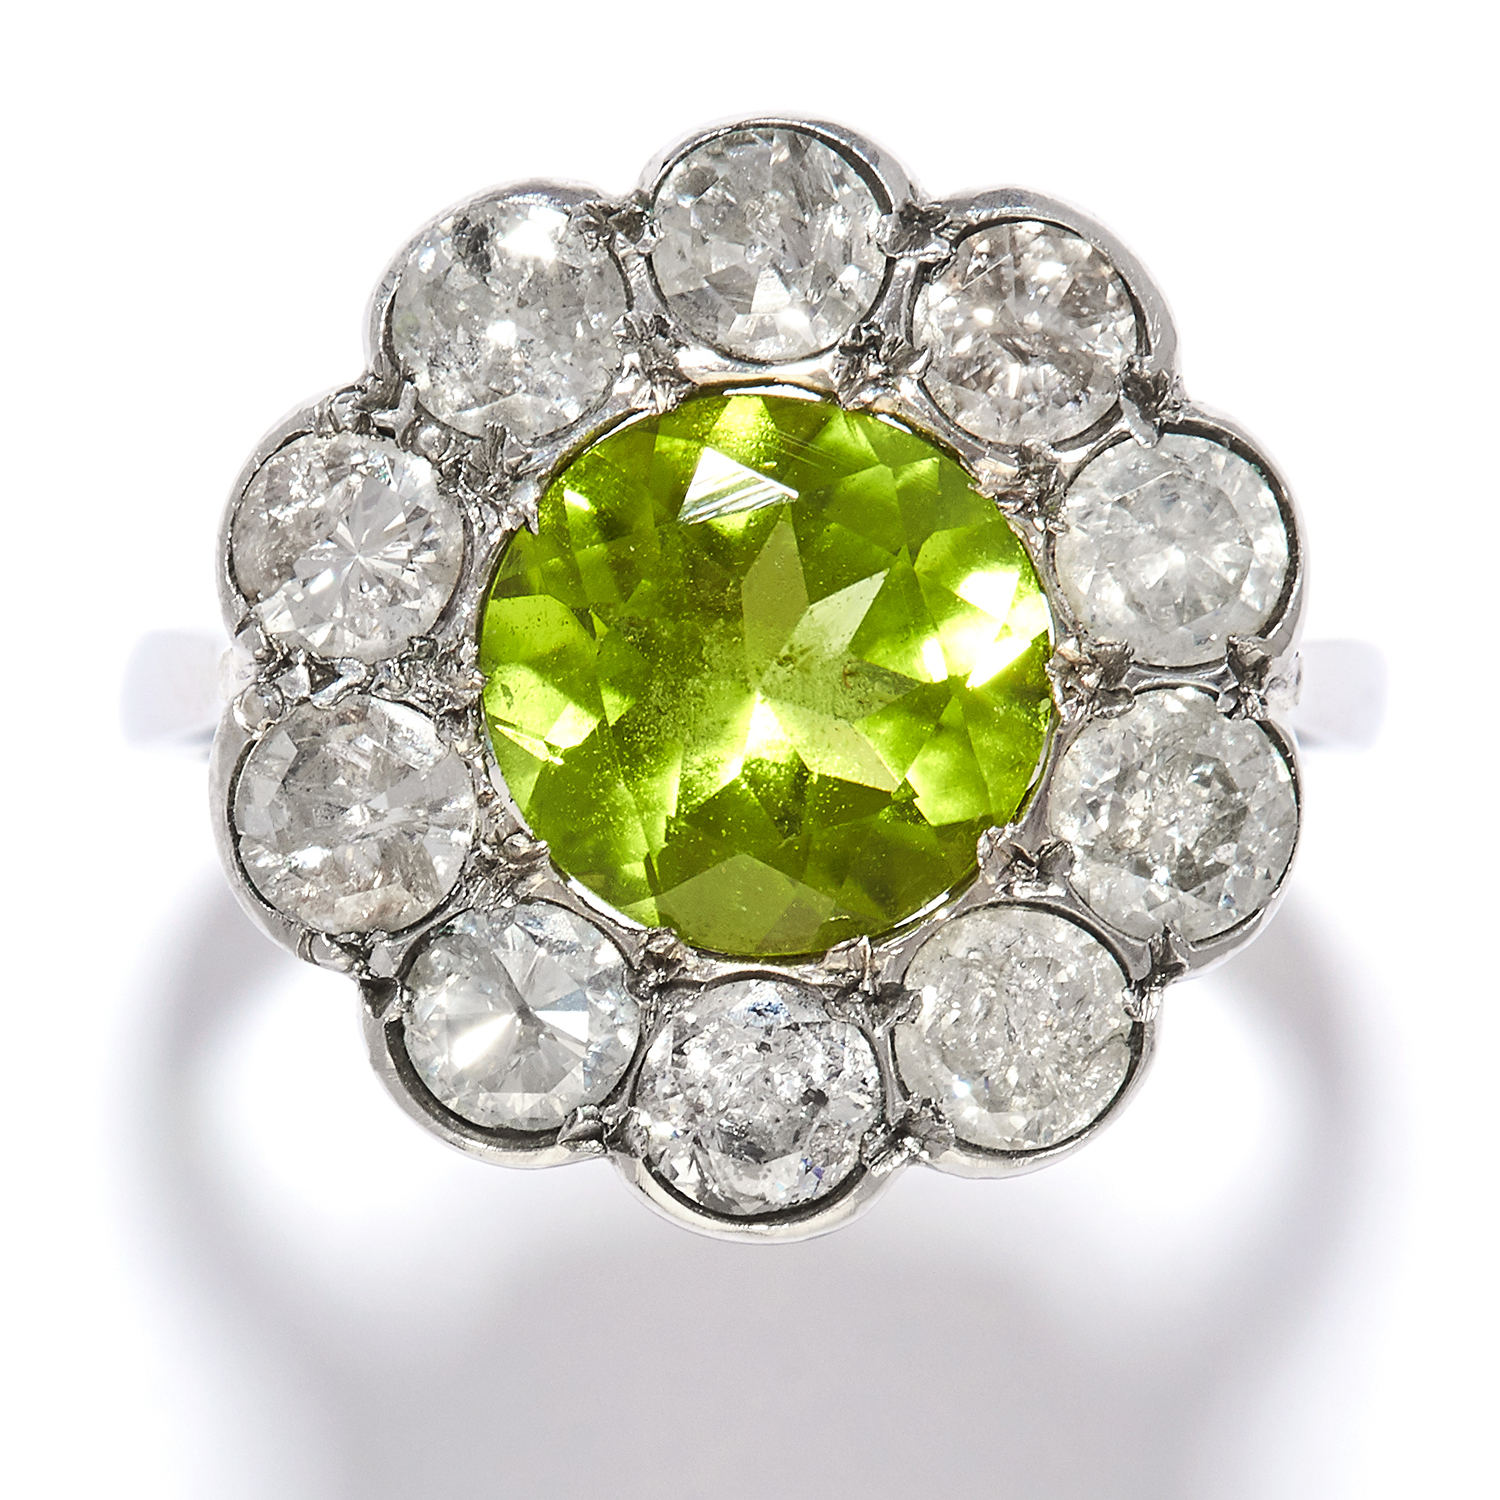 PERIDOT AND DIAMOND CLUSTER RING in platinum or white gold, the round cut peridot encircled by